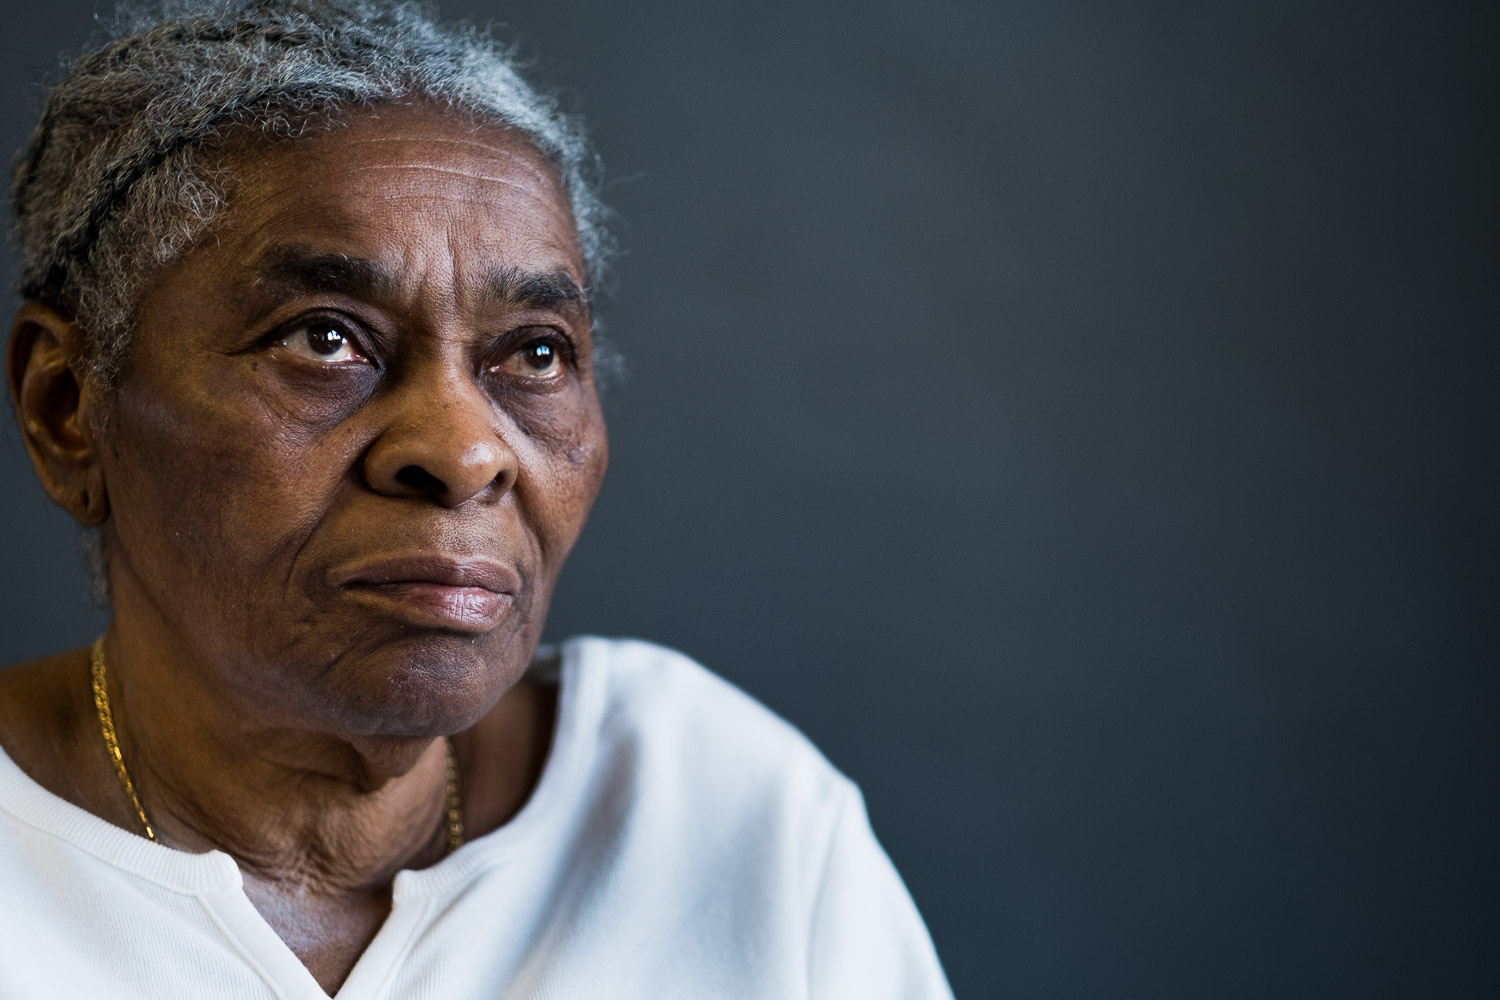 Faces of Alzheimers  by steven martine